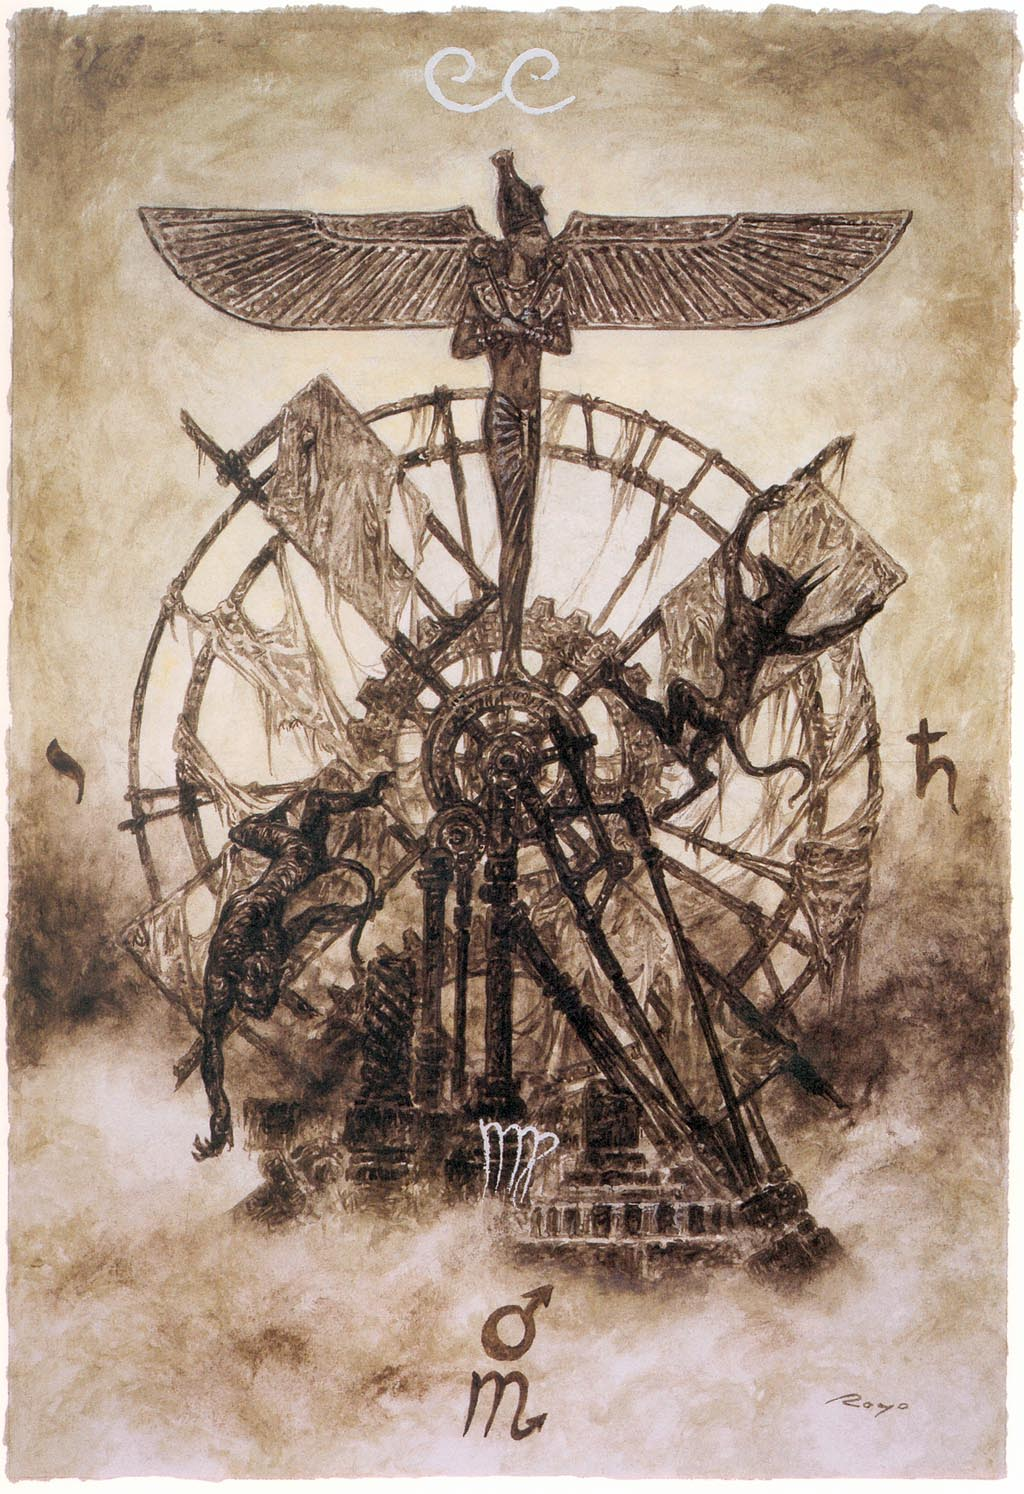 Major Arcana - The Wheel of Fortune